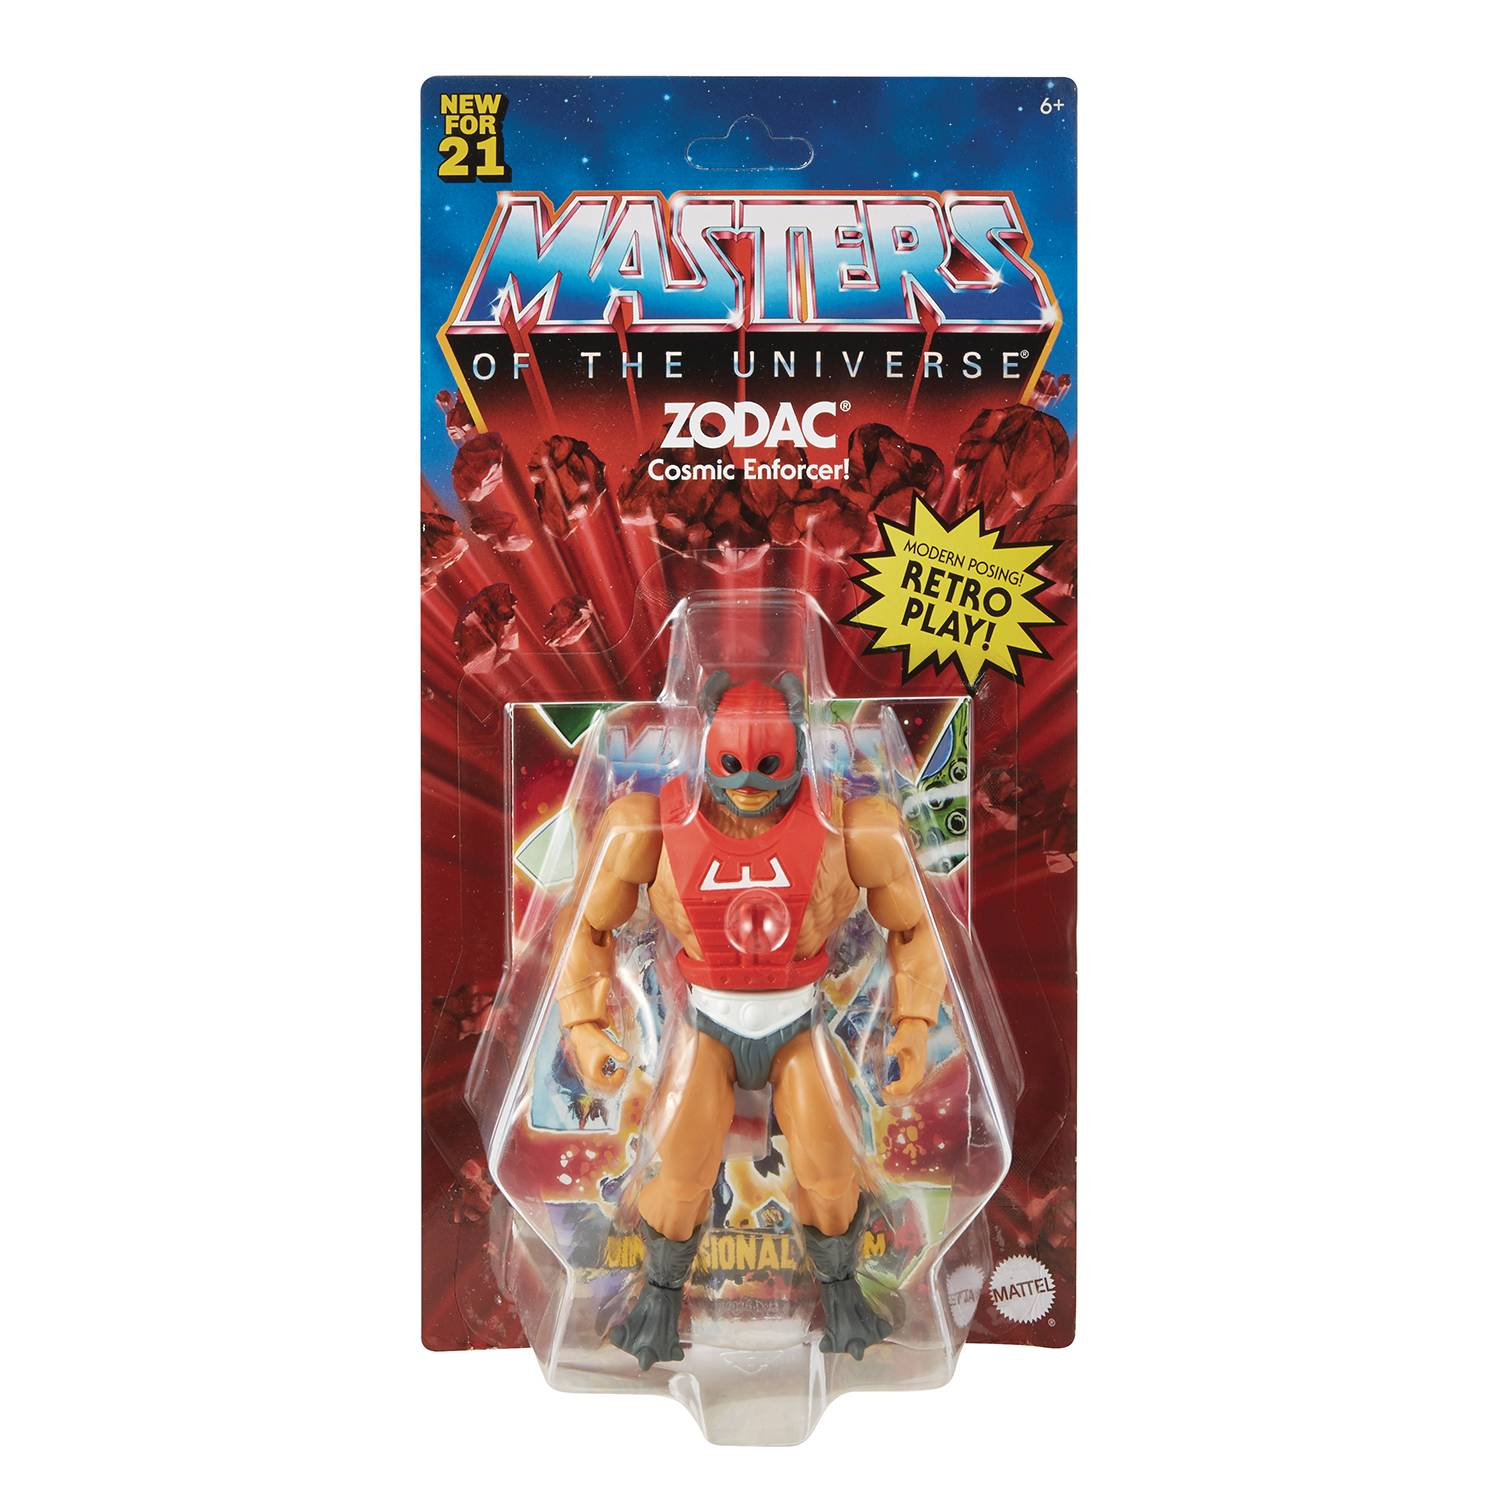 ZODAC - MASTERS OF THE UNIVERSE ORIGINS ACTION FIGURE